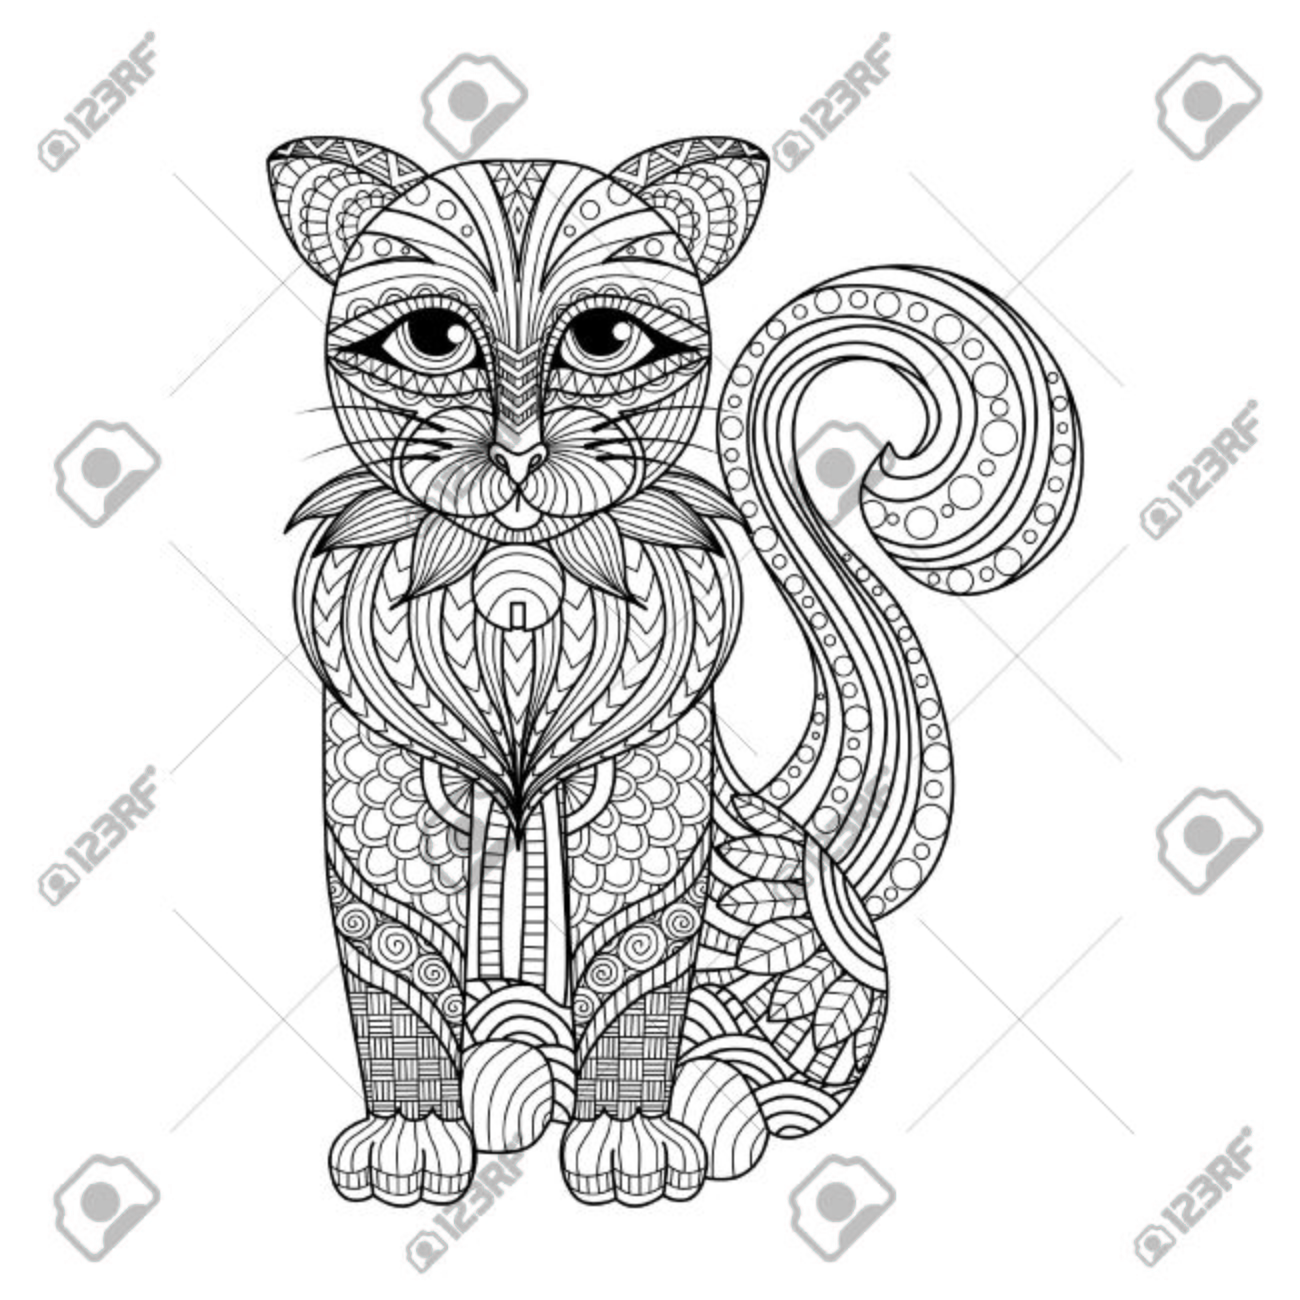 drawing cat for coloring page shirt design effect tattoo